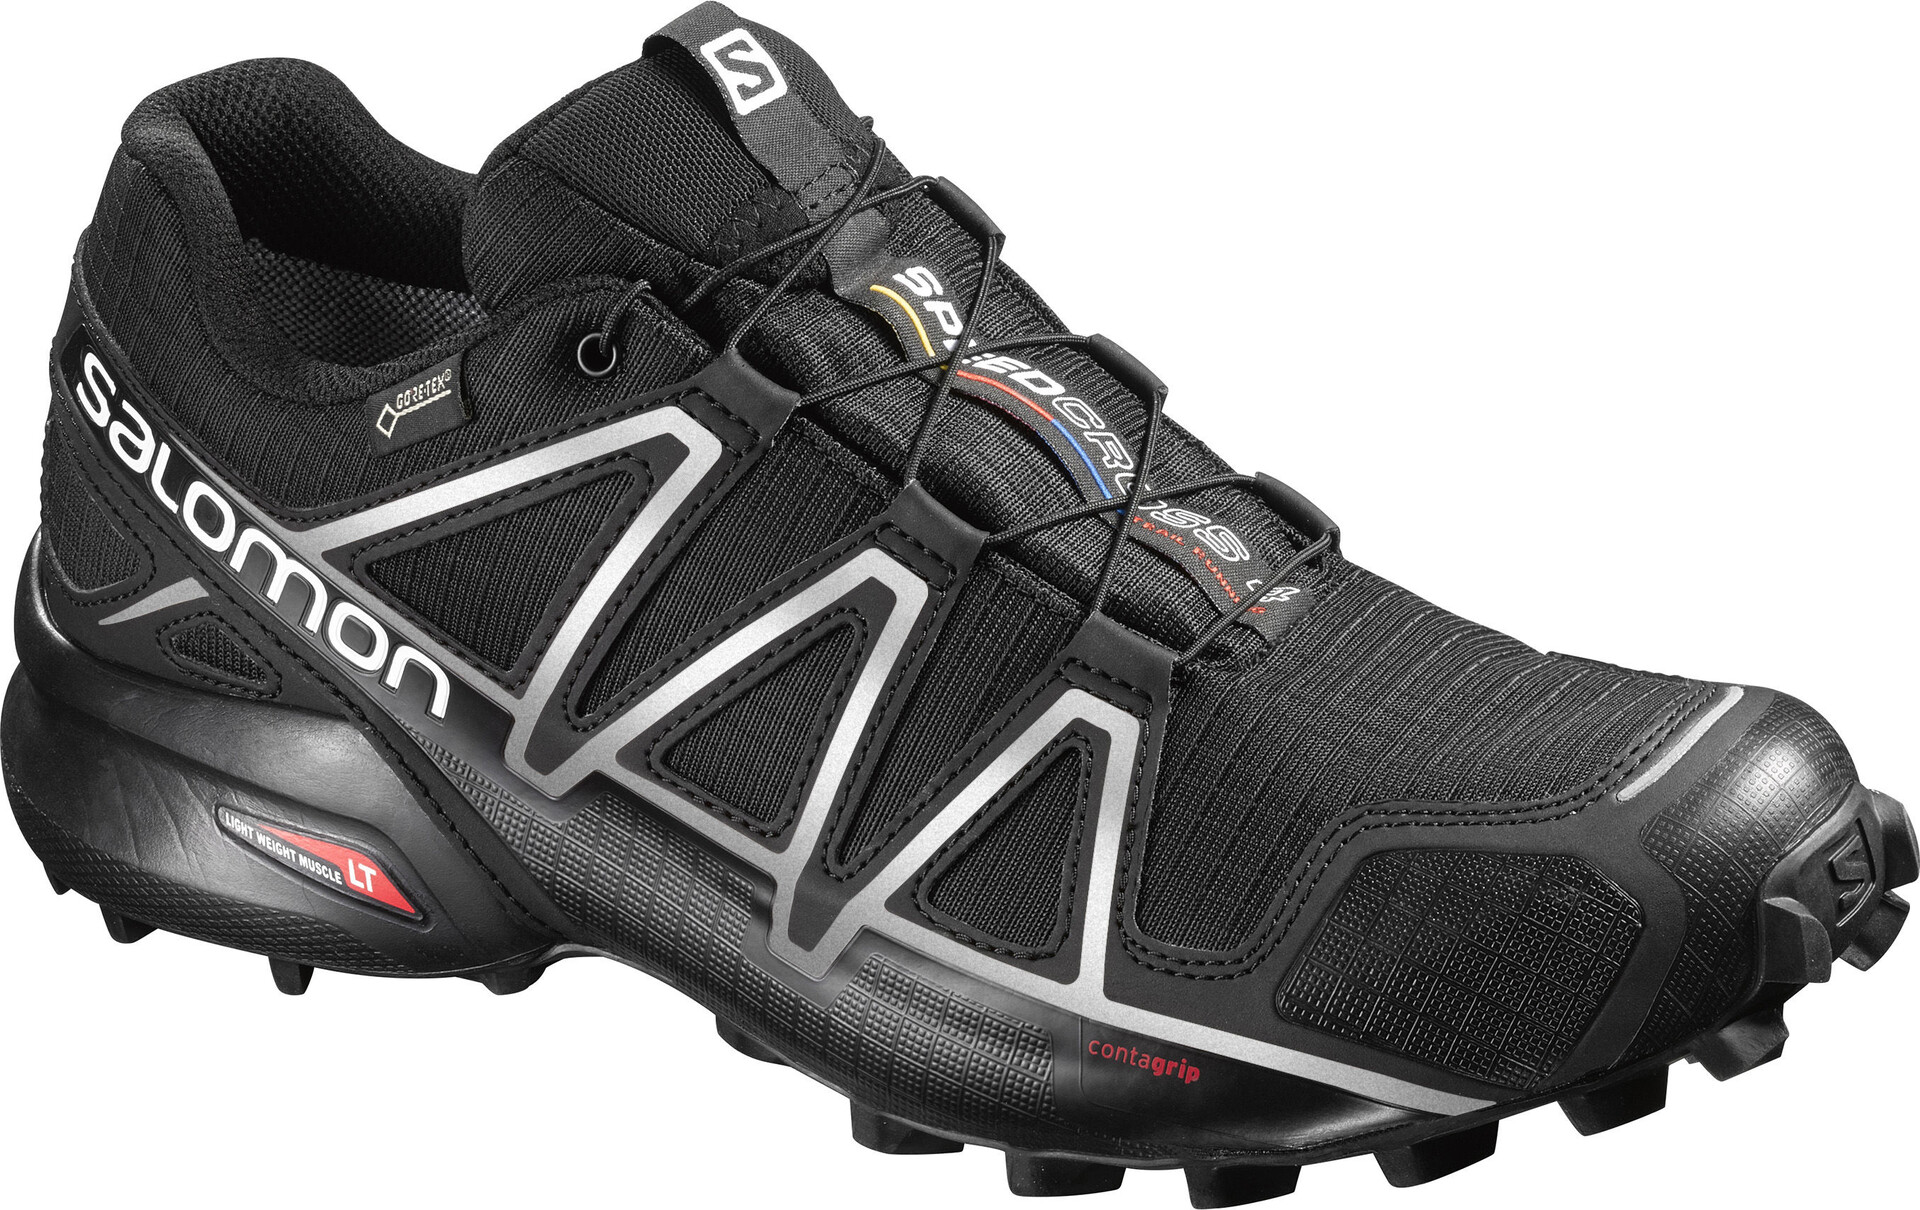 b885890d3d318 ... closeout salomon speedcross 4 gtx zapatillas running hombre gris negro  a5df9 89af7